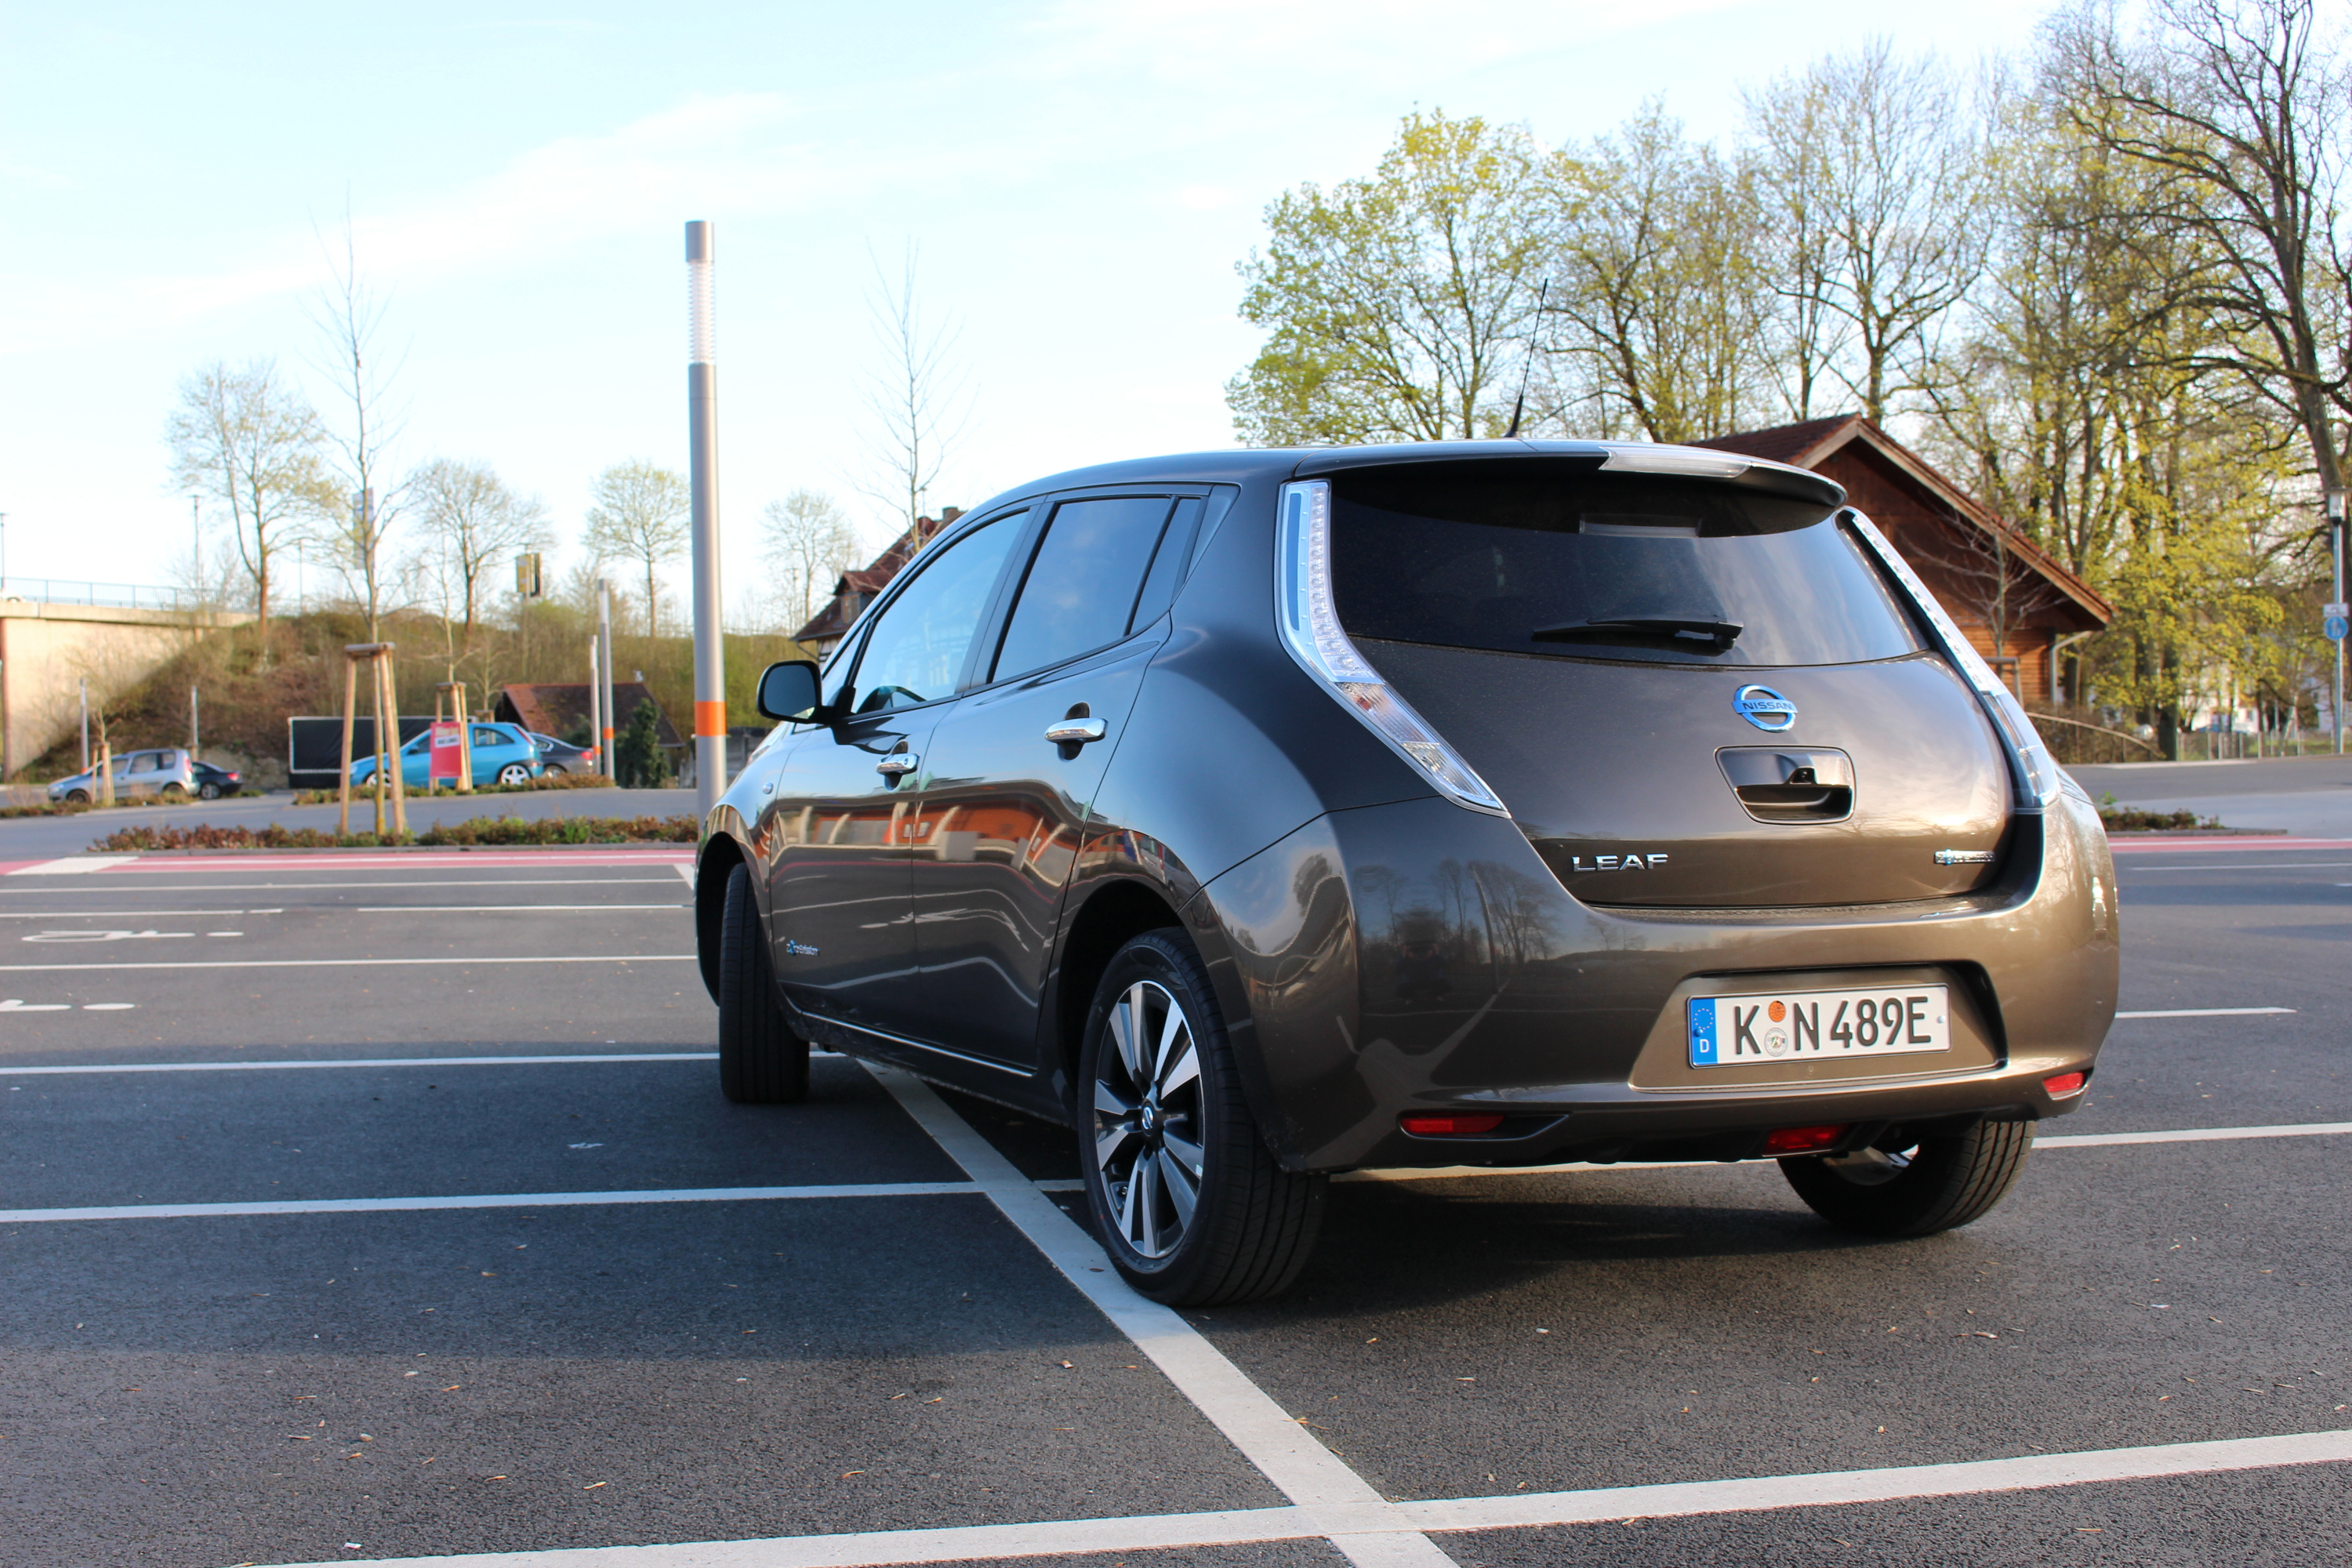 test des 2016er 30 kwh nissan leaf ein zwischenfazit. Black Bedroom Furniture Sets. Home Design Ideas